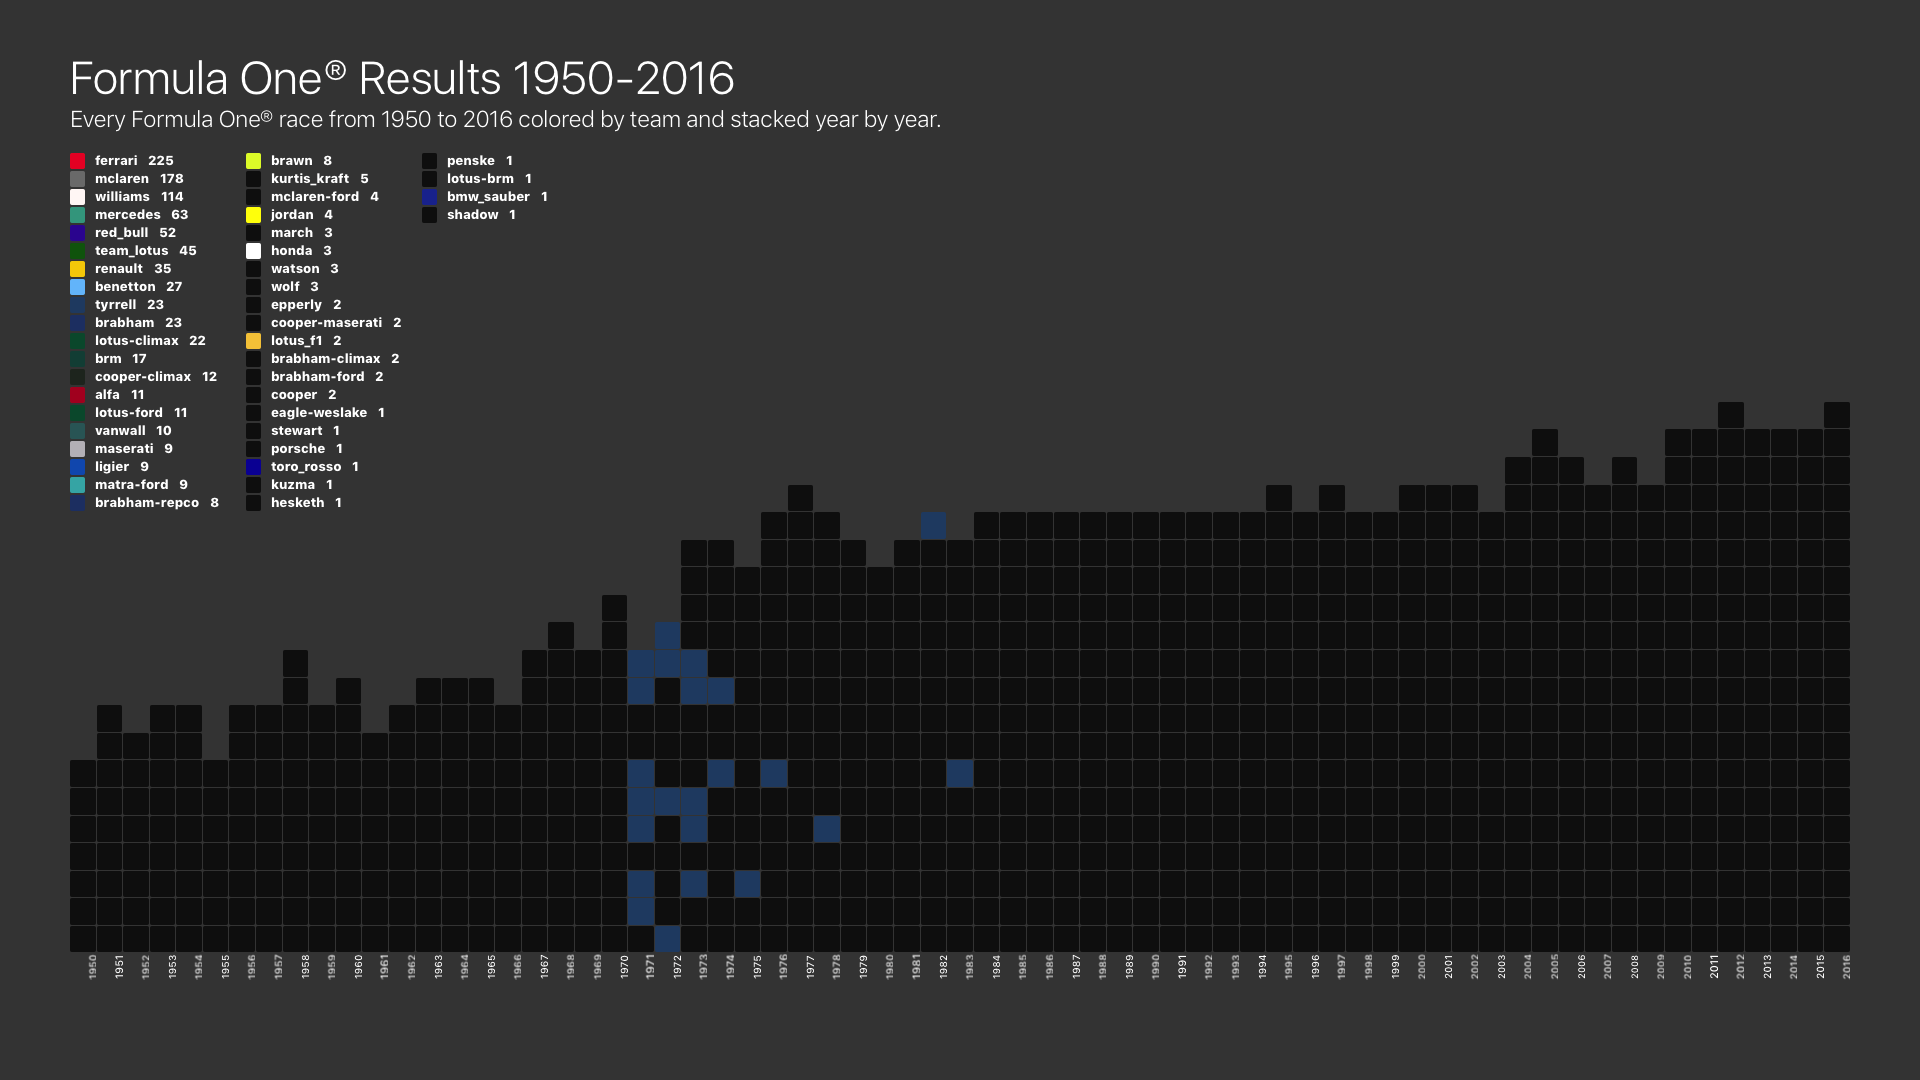 Tyrrell Victories by Year